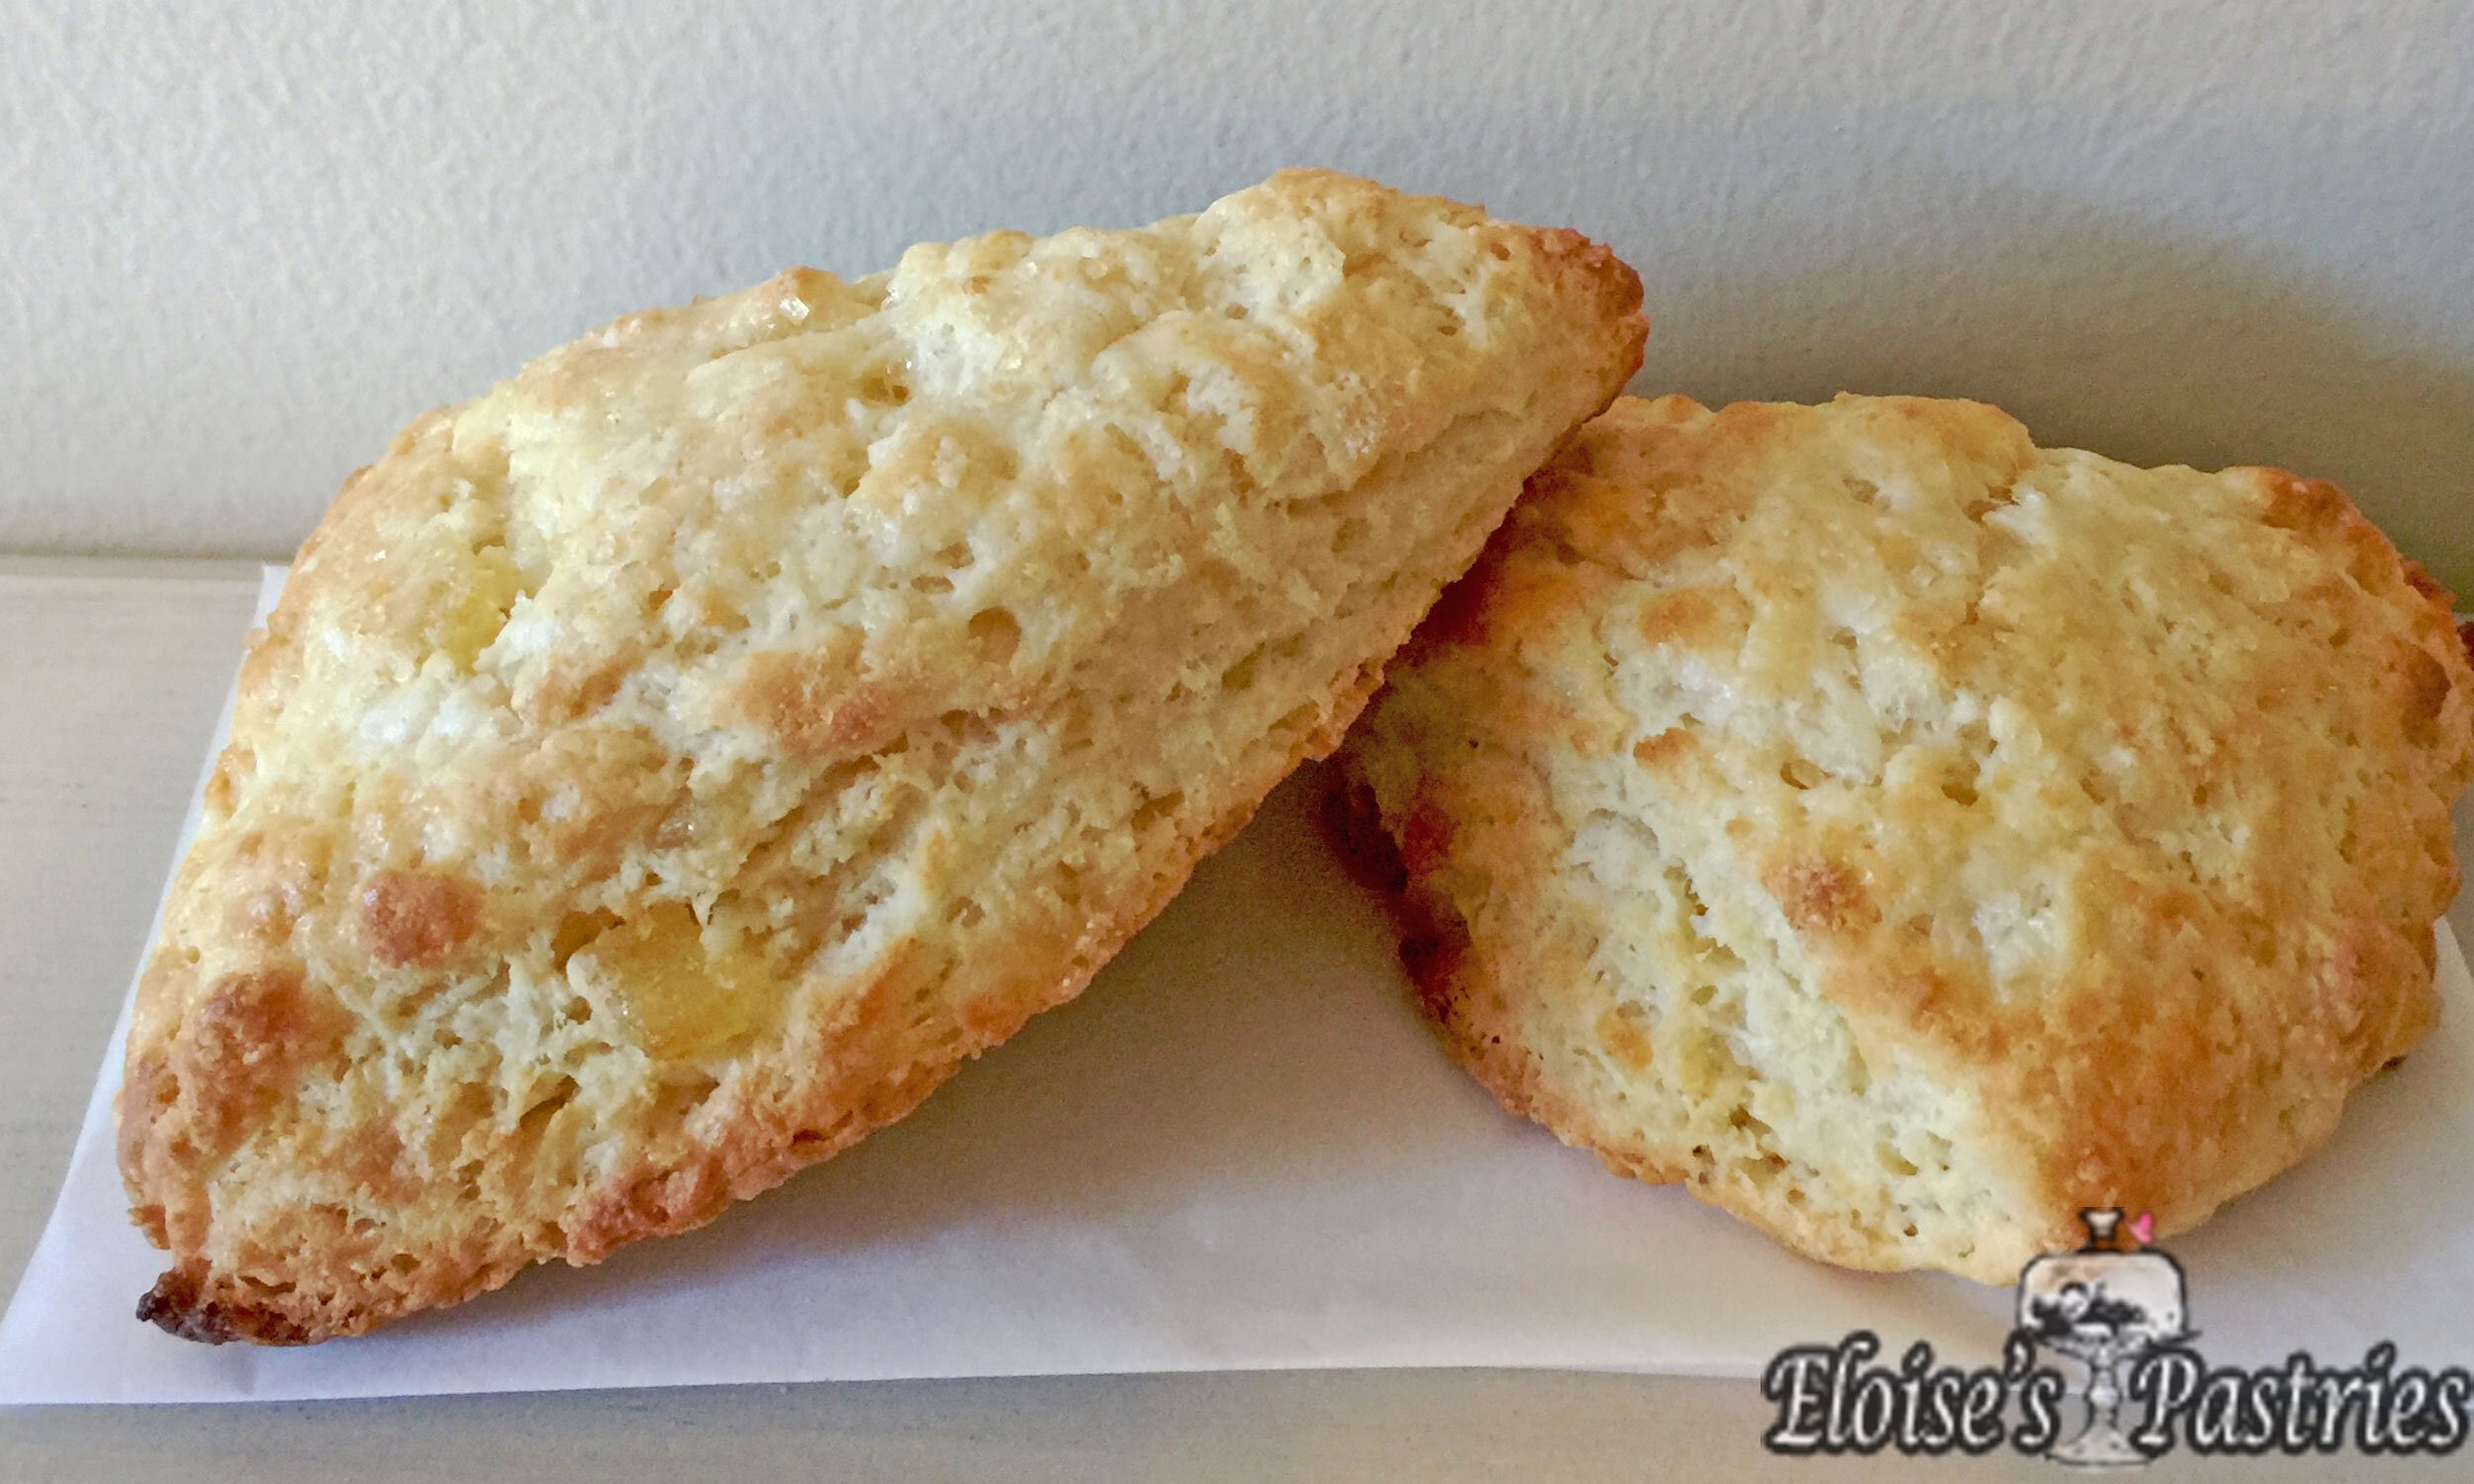 Gluten-Free Breads & Scones - All are so tasty, no-one can tell they're gluten-free!